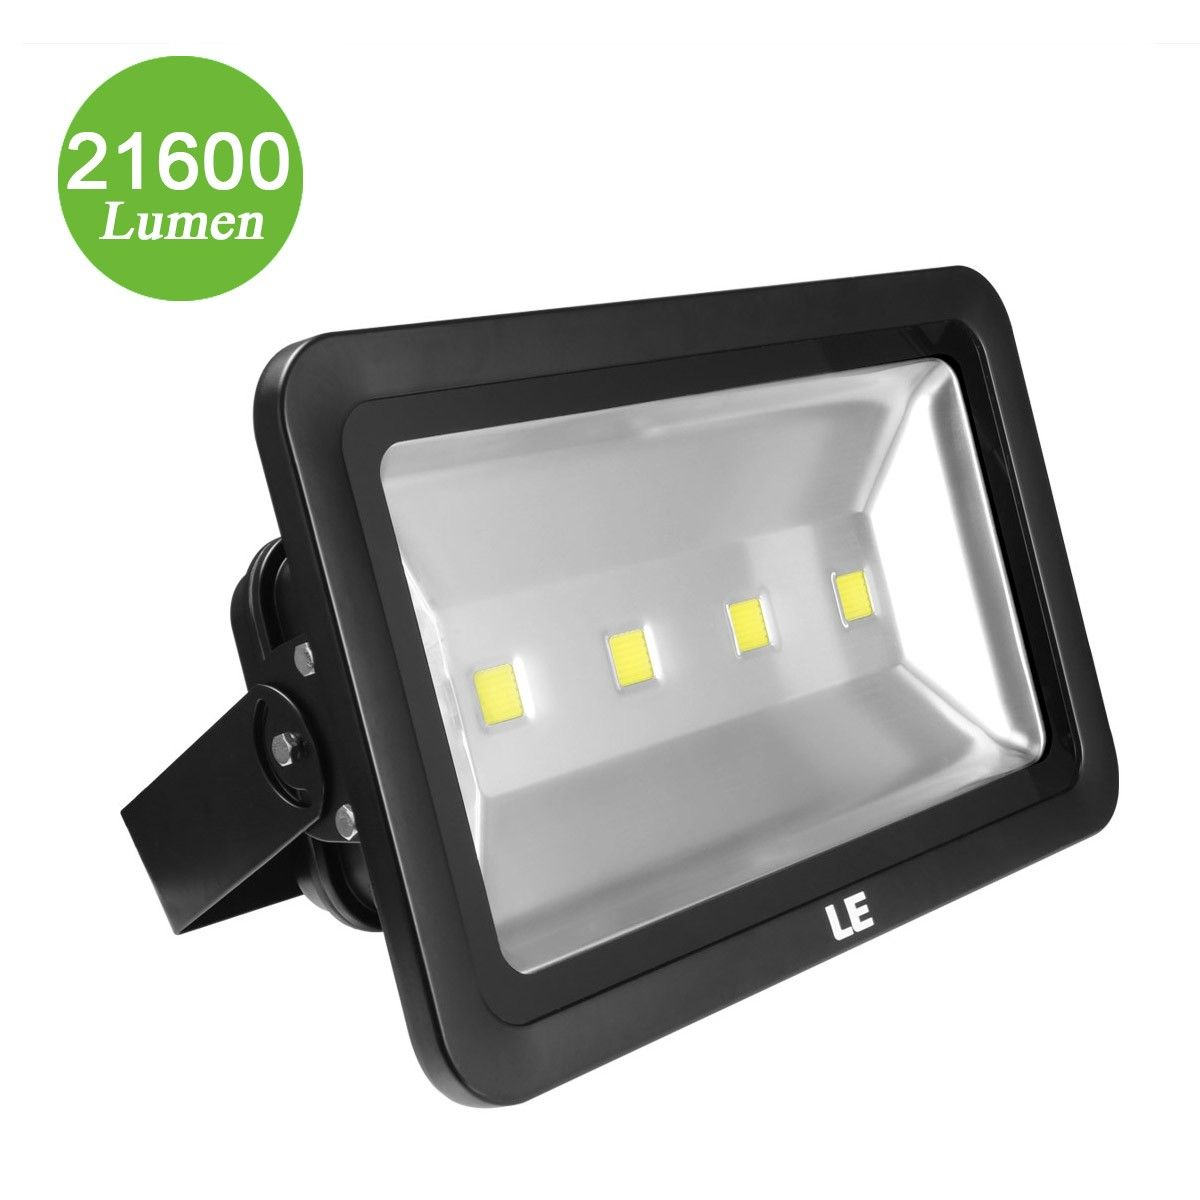 Led Outdoor Flood Light Bulbs Entrancing High Power 200W Outdoor Security Led Flood Lights 600W Hps Review